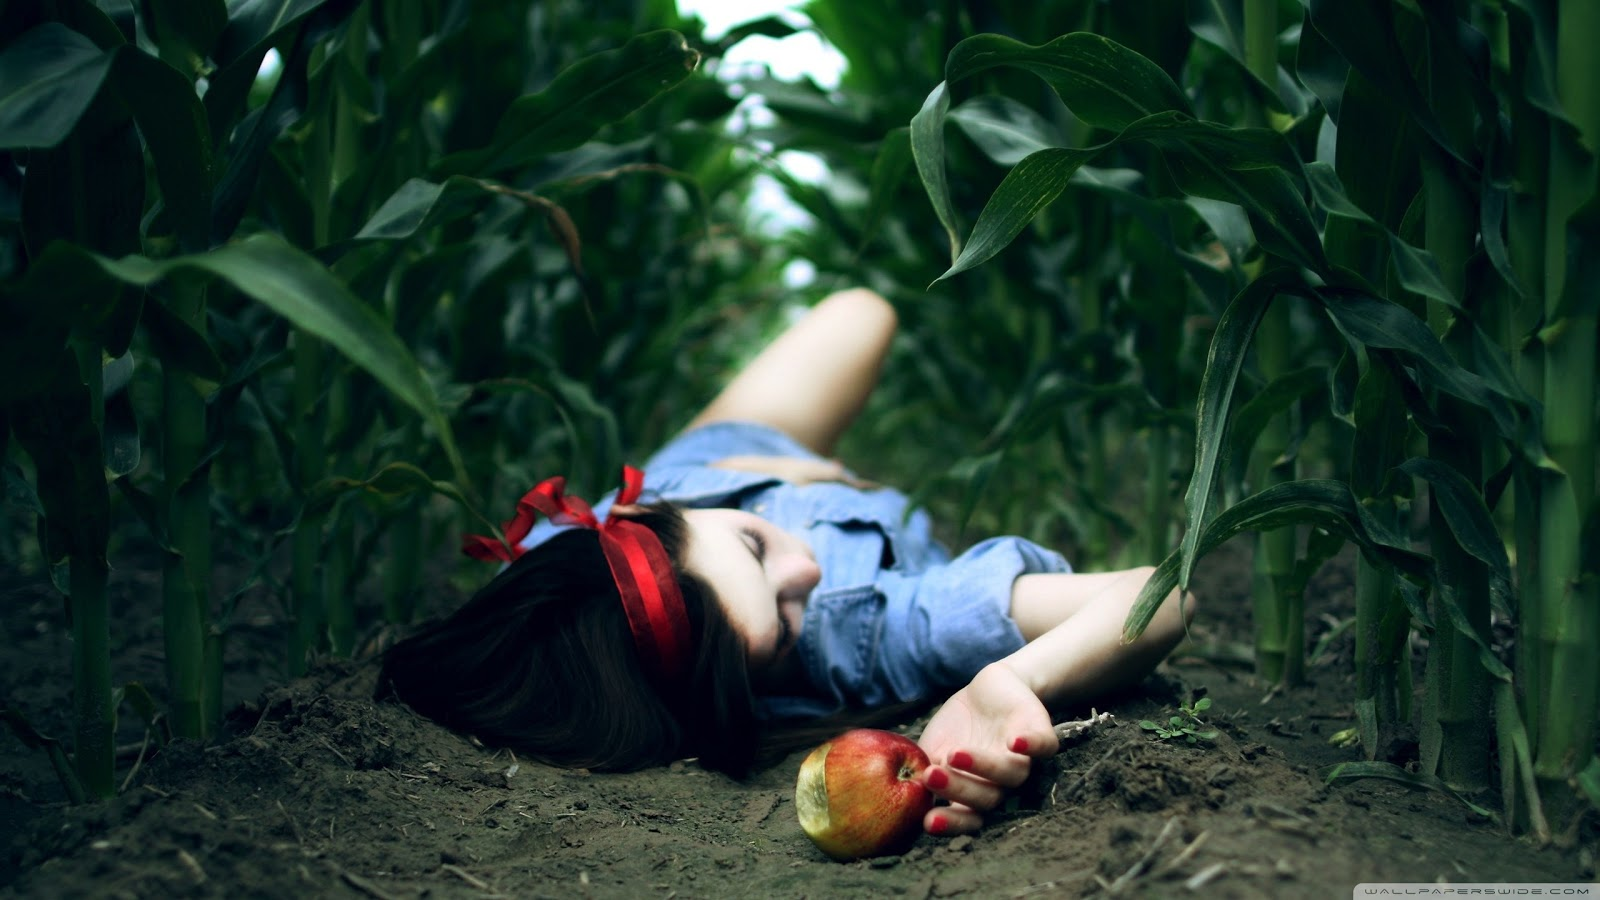 http://1.bp.blogspot.com/-QPOfTdtx_QA/UOERqRZrykI/AAAAAAAAJYQ/iy8v9mOzBKM/s1600/hinh-nguoi-mau-snow_white_and_the_poison_apple-wallpaper-2560x1440.jpg